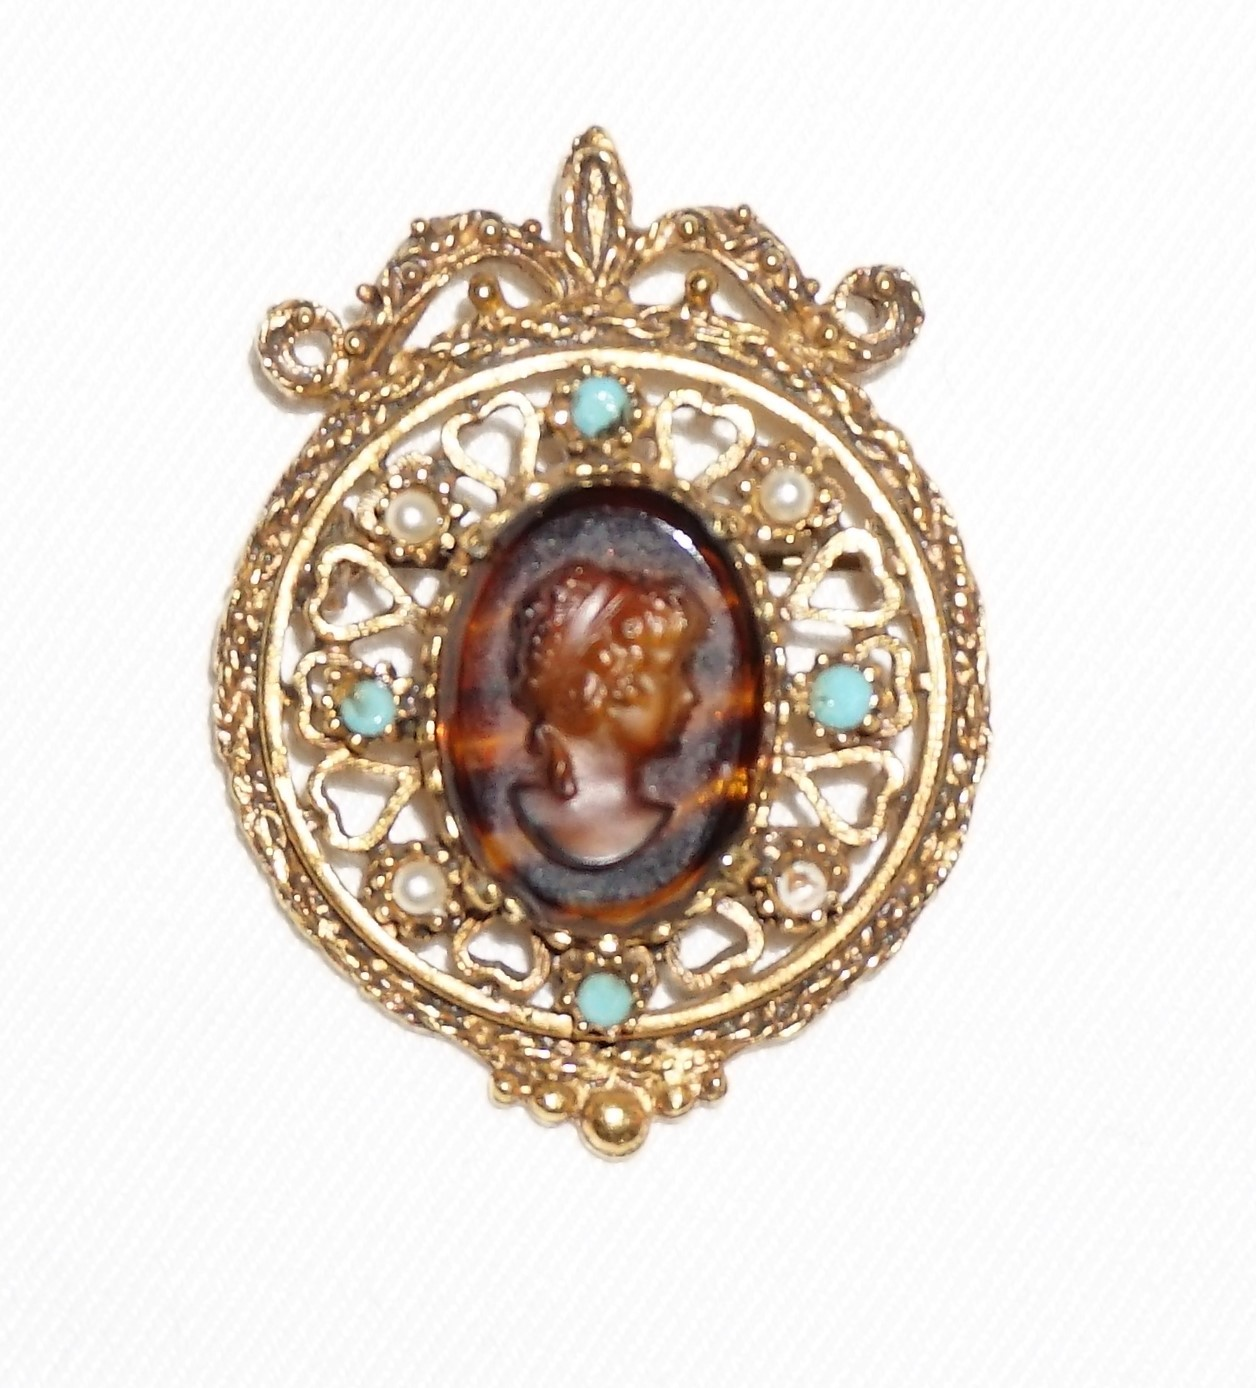 Primary image for Vintage Florenza Brooch  Brown Glass Tortoiseshell Cameo Signed Victorian